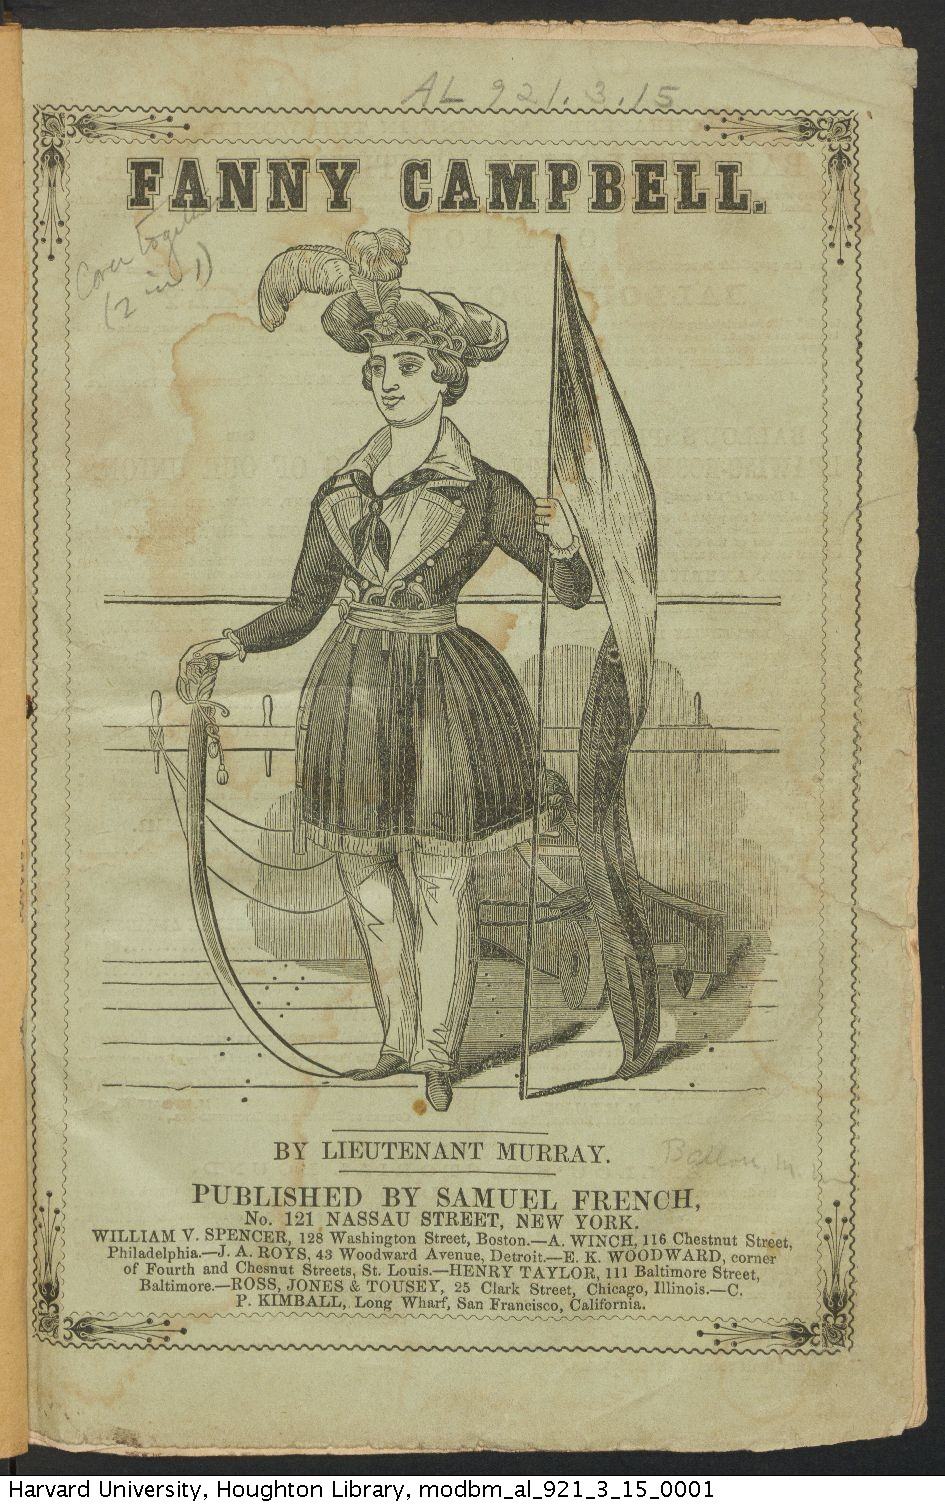 Ballou, Maturin Murray, 1820-1895. Fanny Campbell: or, The female pirate captain. A tale of the Revolution, [1844]. AL 921.3.15.